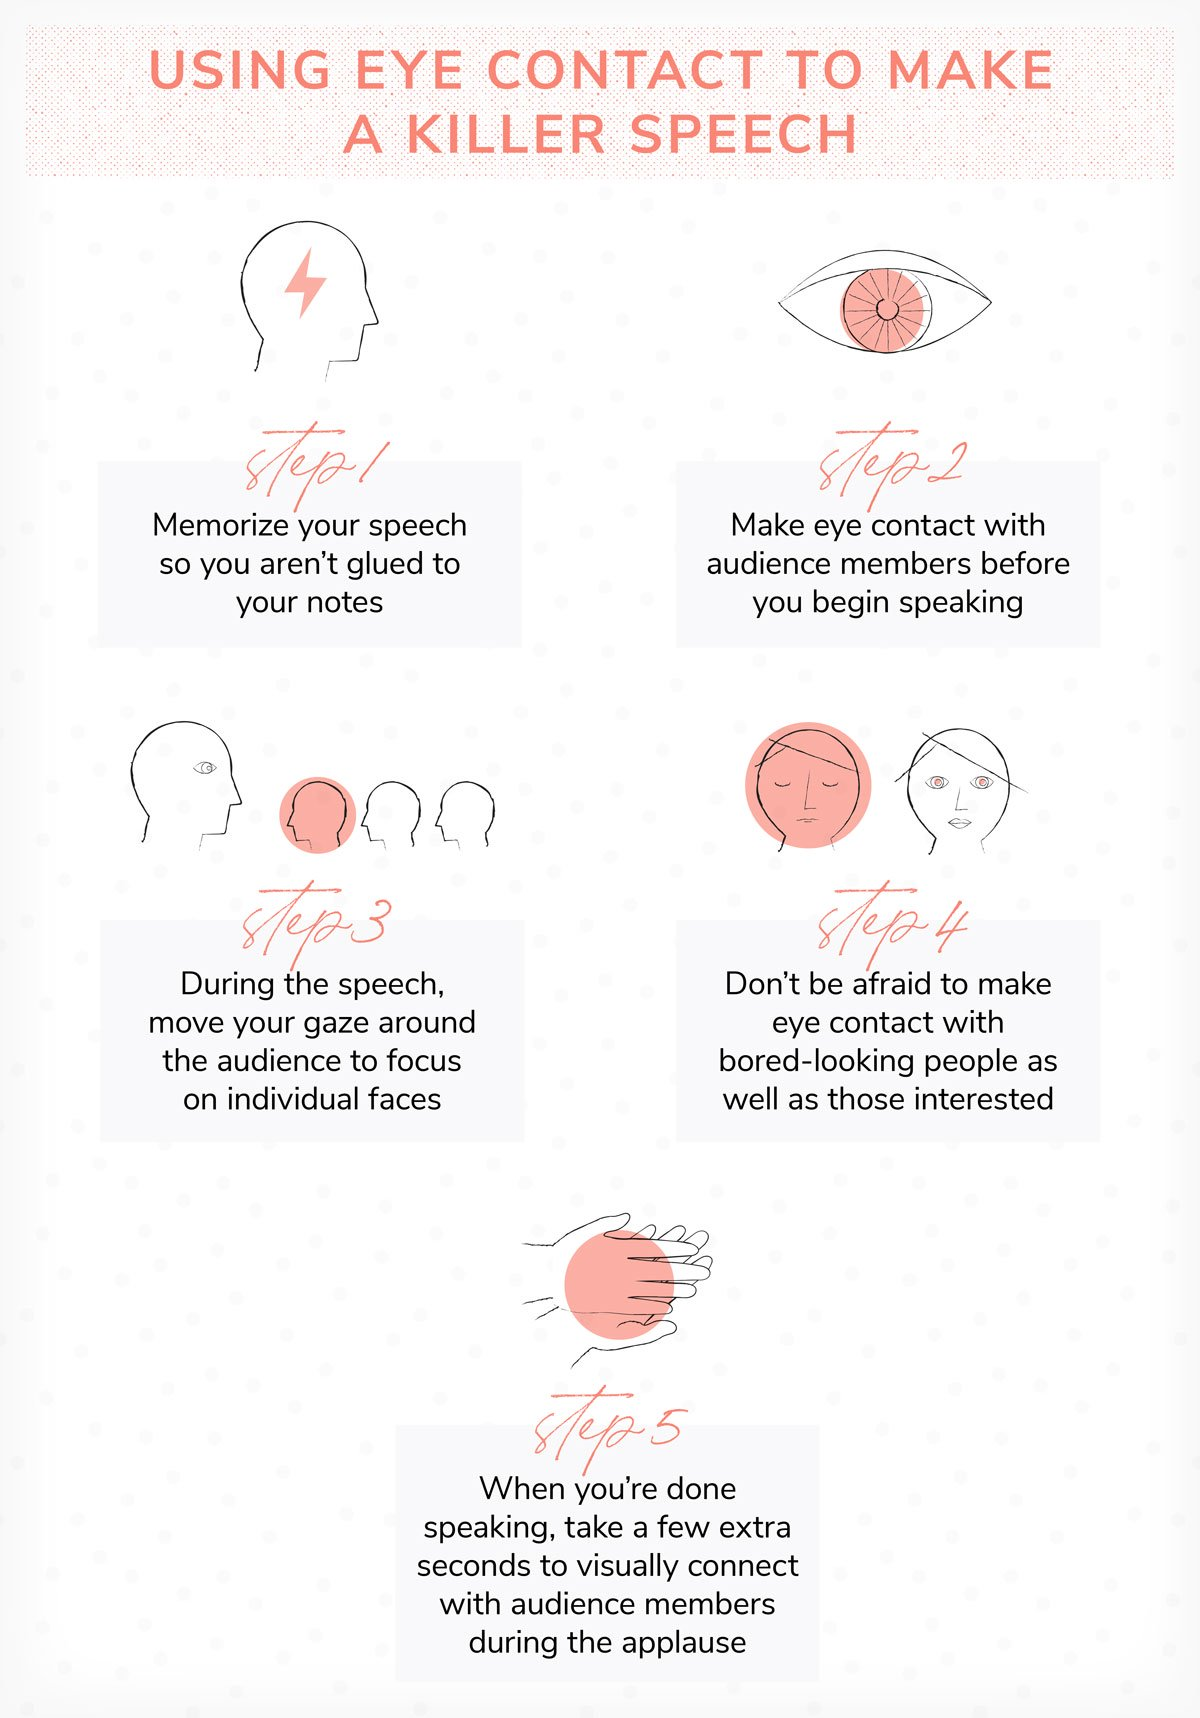 line drawings with tips for making eye contact during a speech